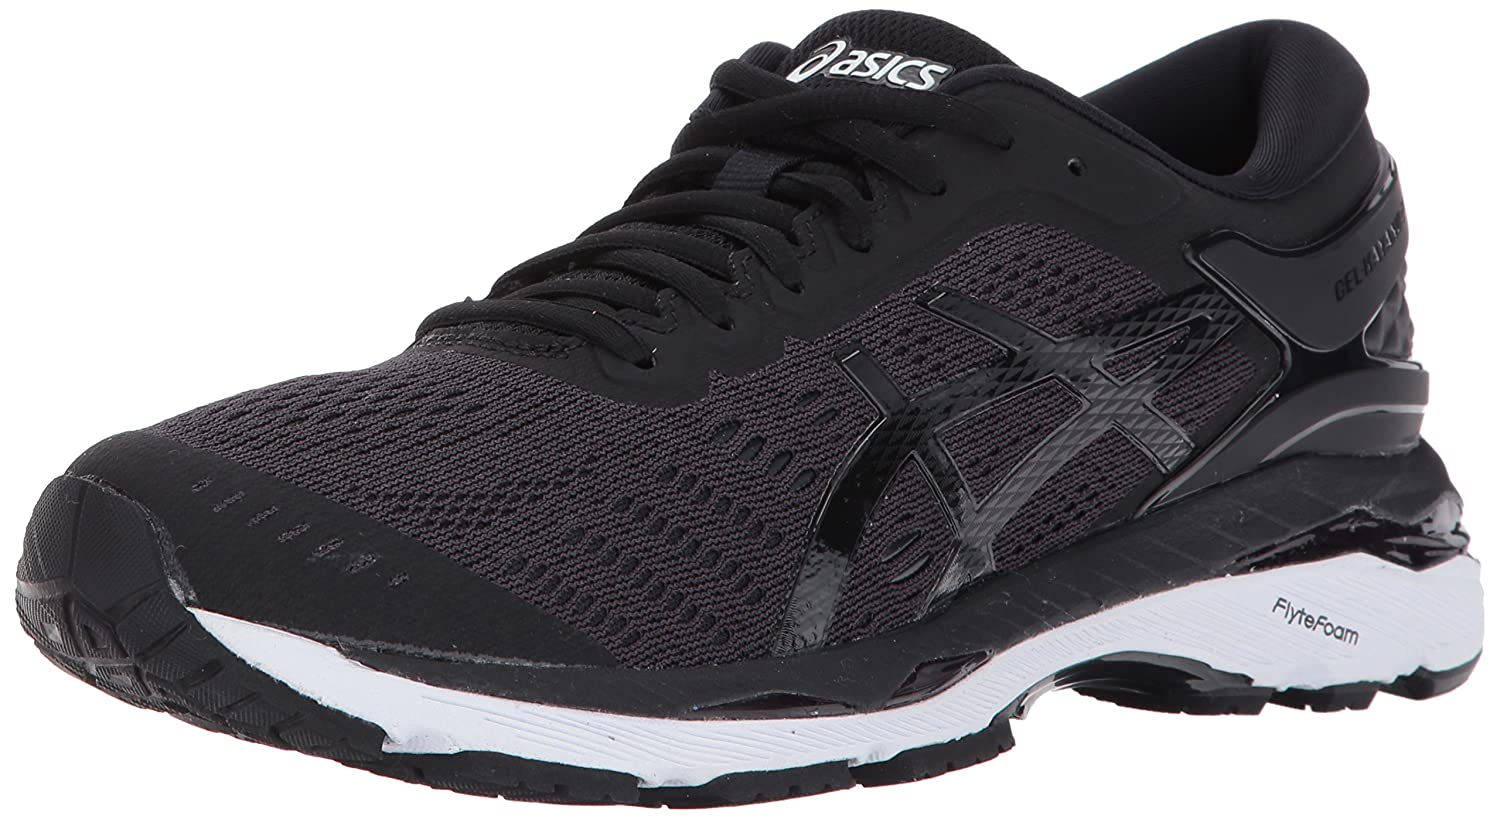 ASICS Women's Gel-Kayano 24 Running Shoe B01MTKJTEB 7.5 B(M) US|Black/Phantom/White